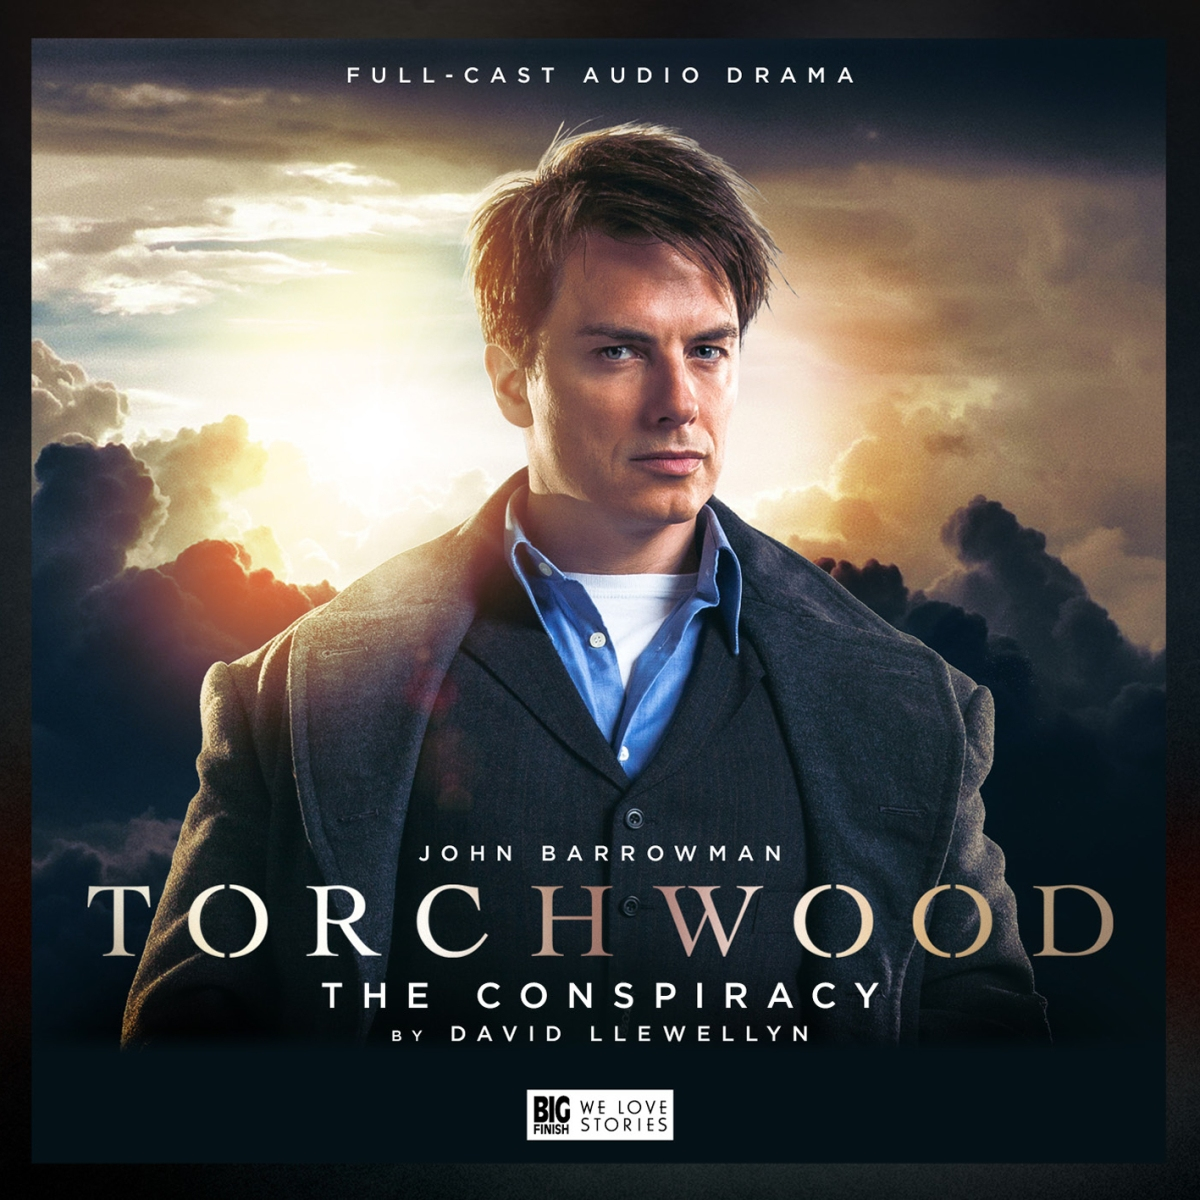 Torchwood 1.1 The Conspiracy reviewed